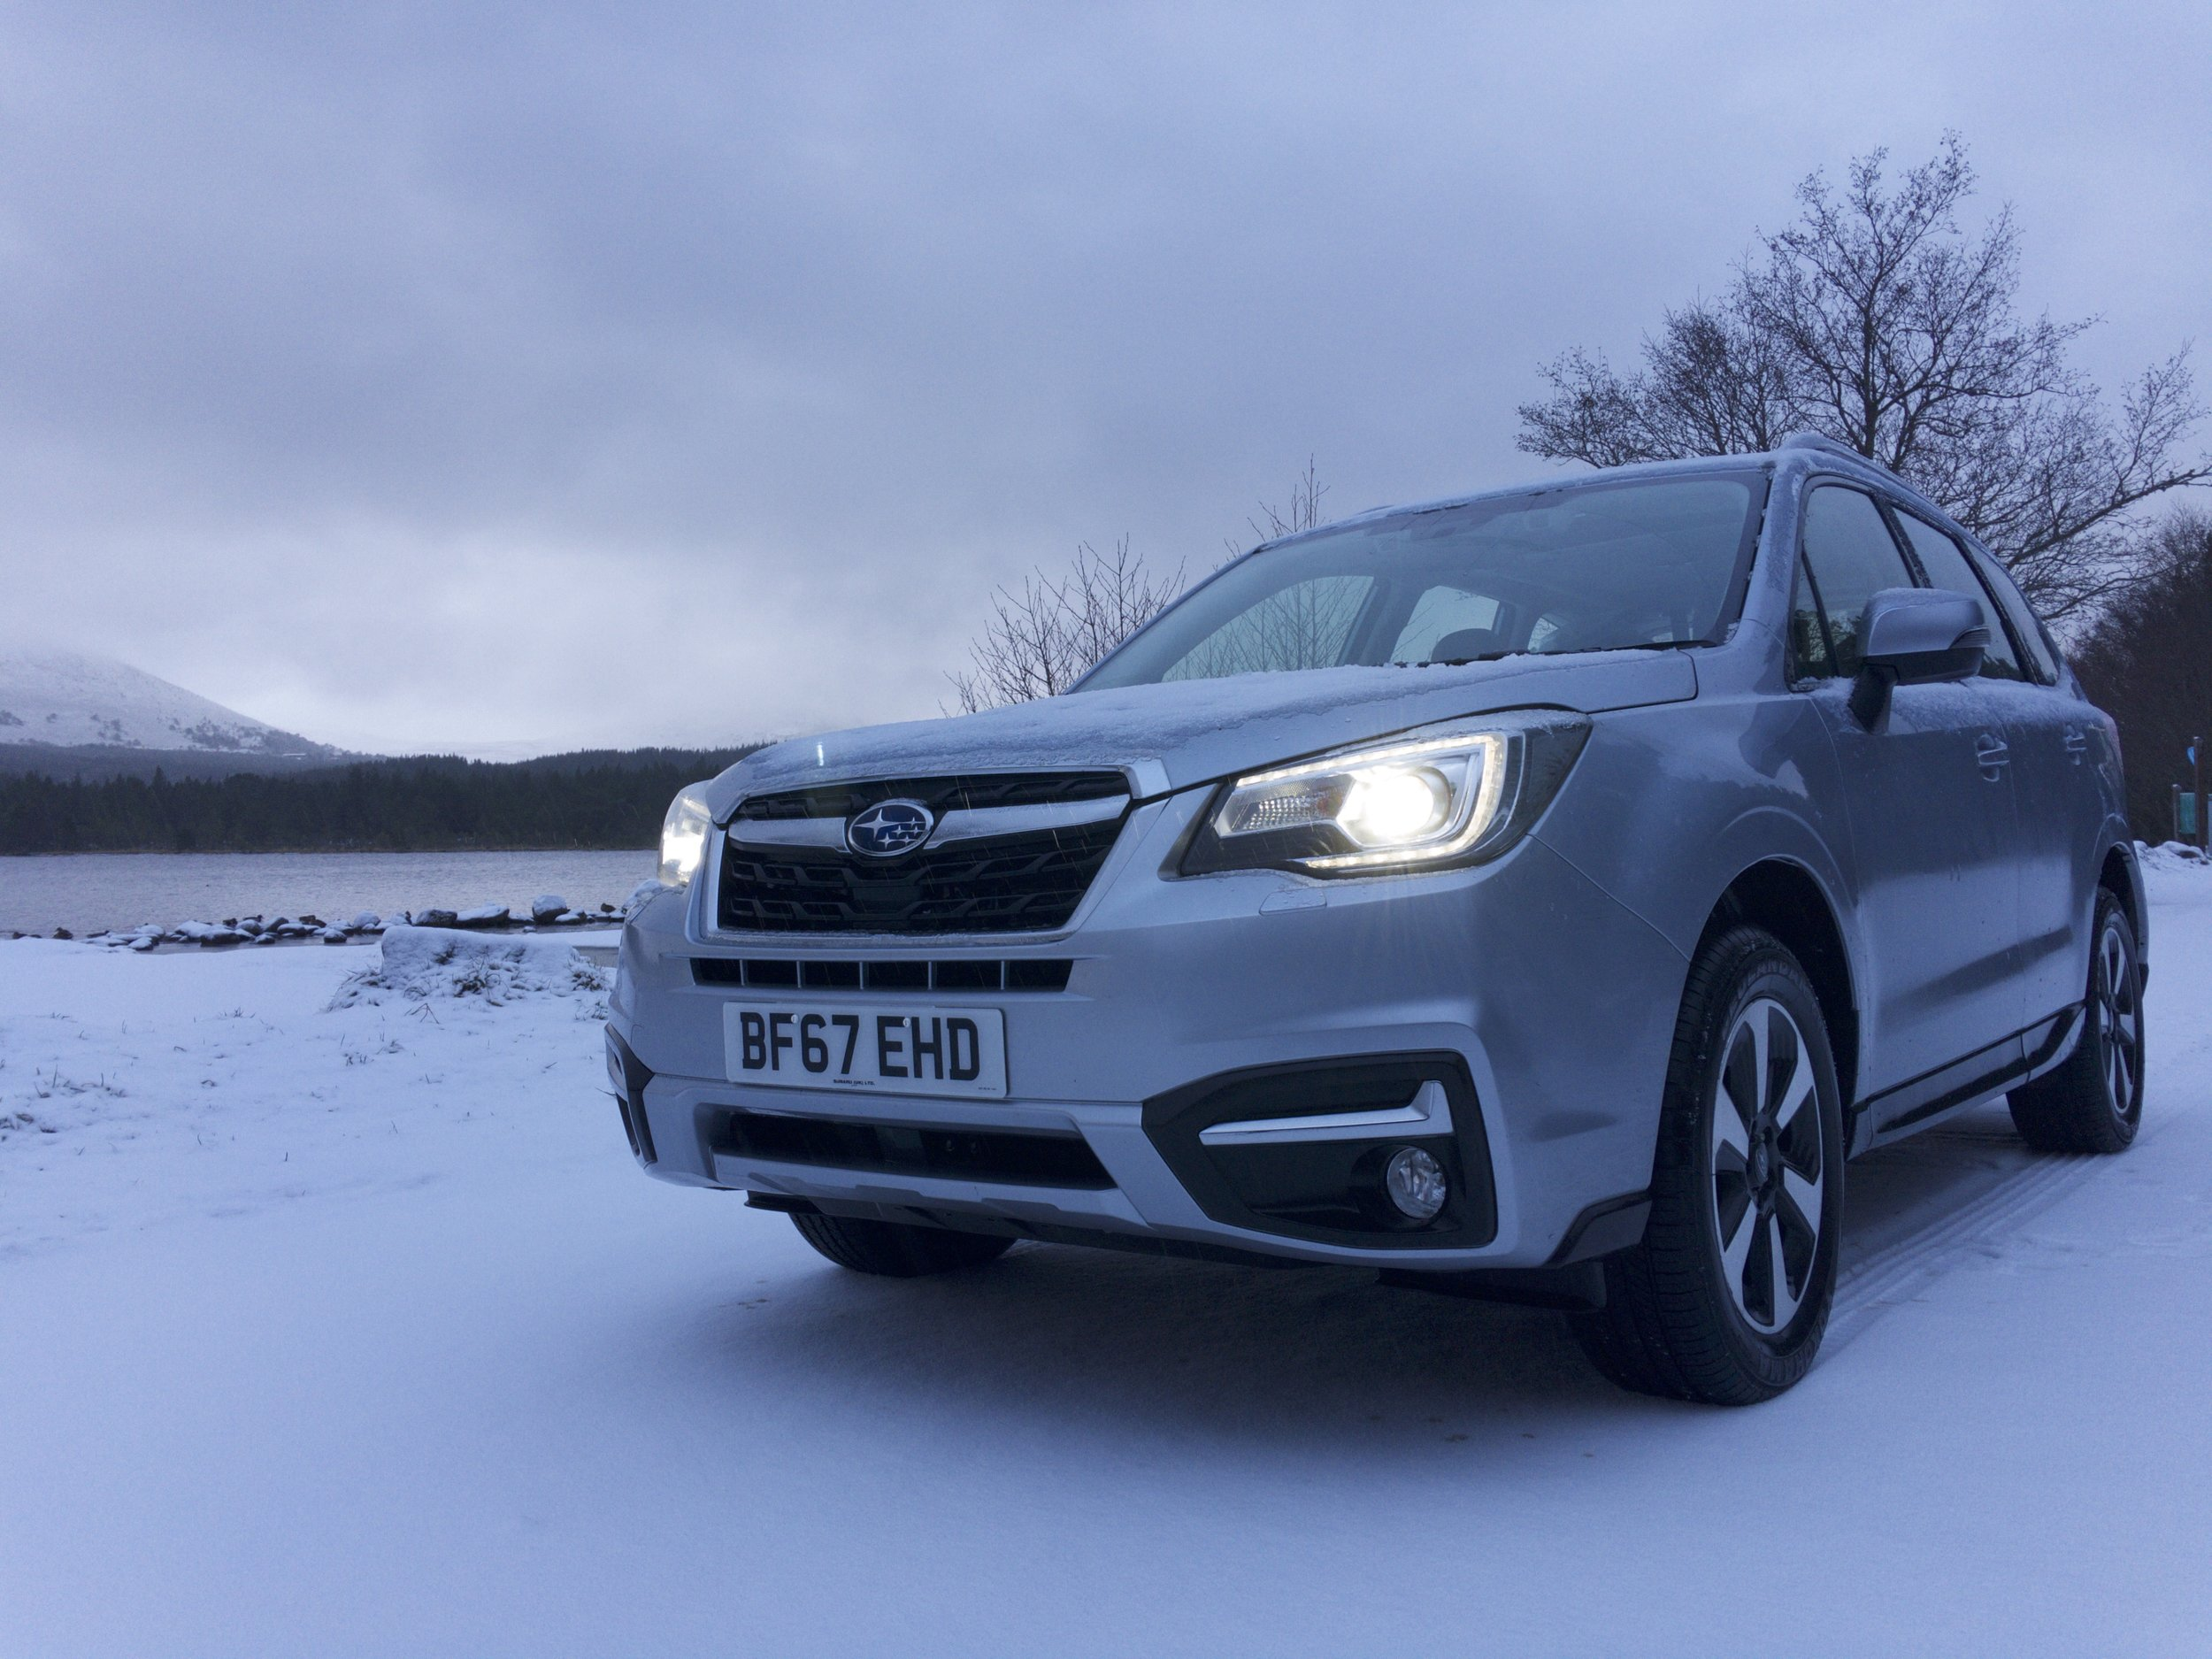 The Subaru Forester perfectly at ease in the snow and ice.